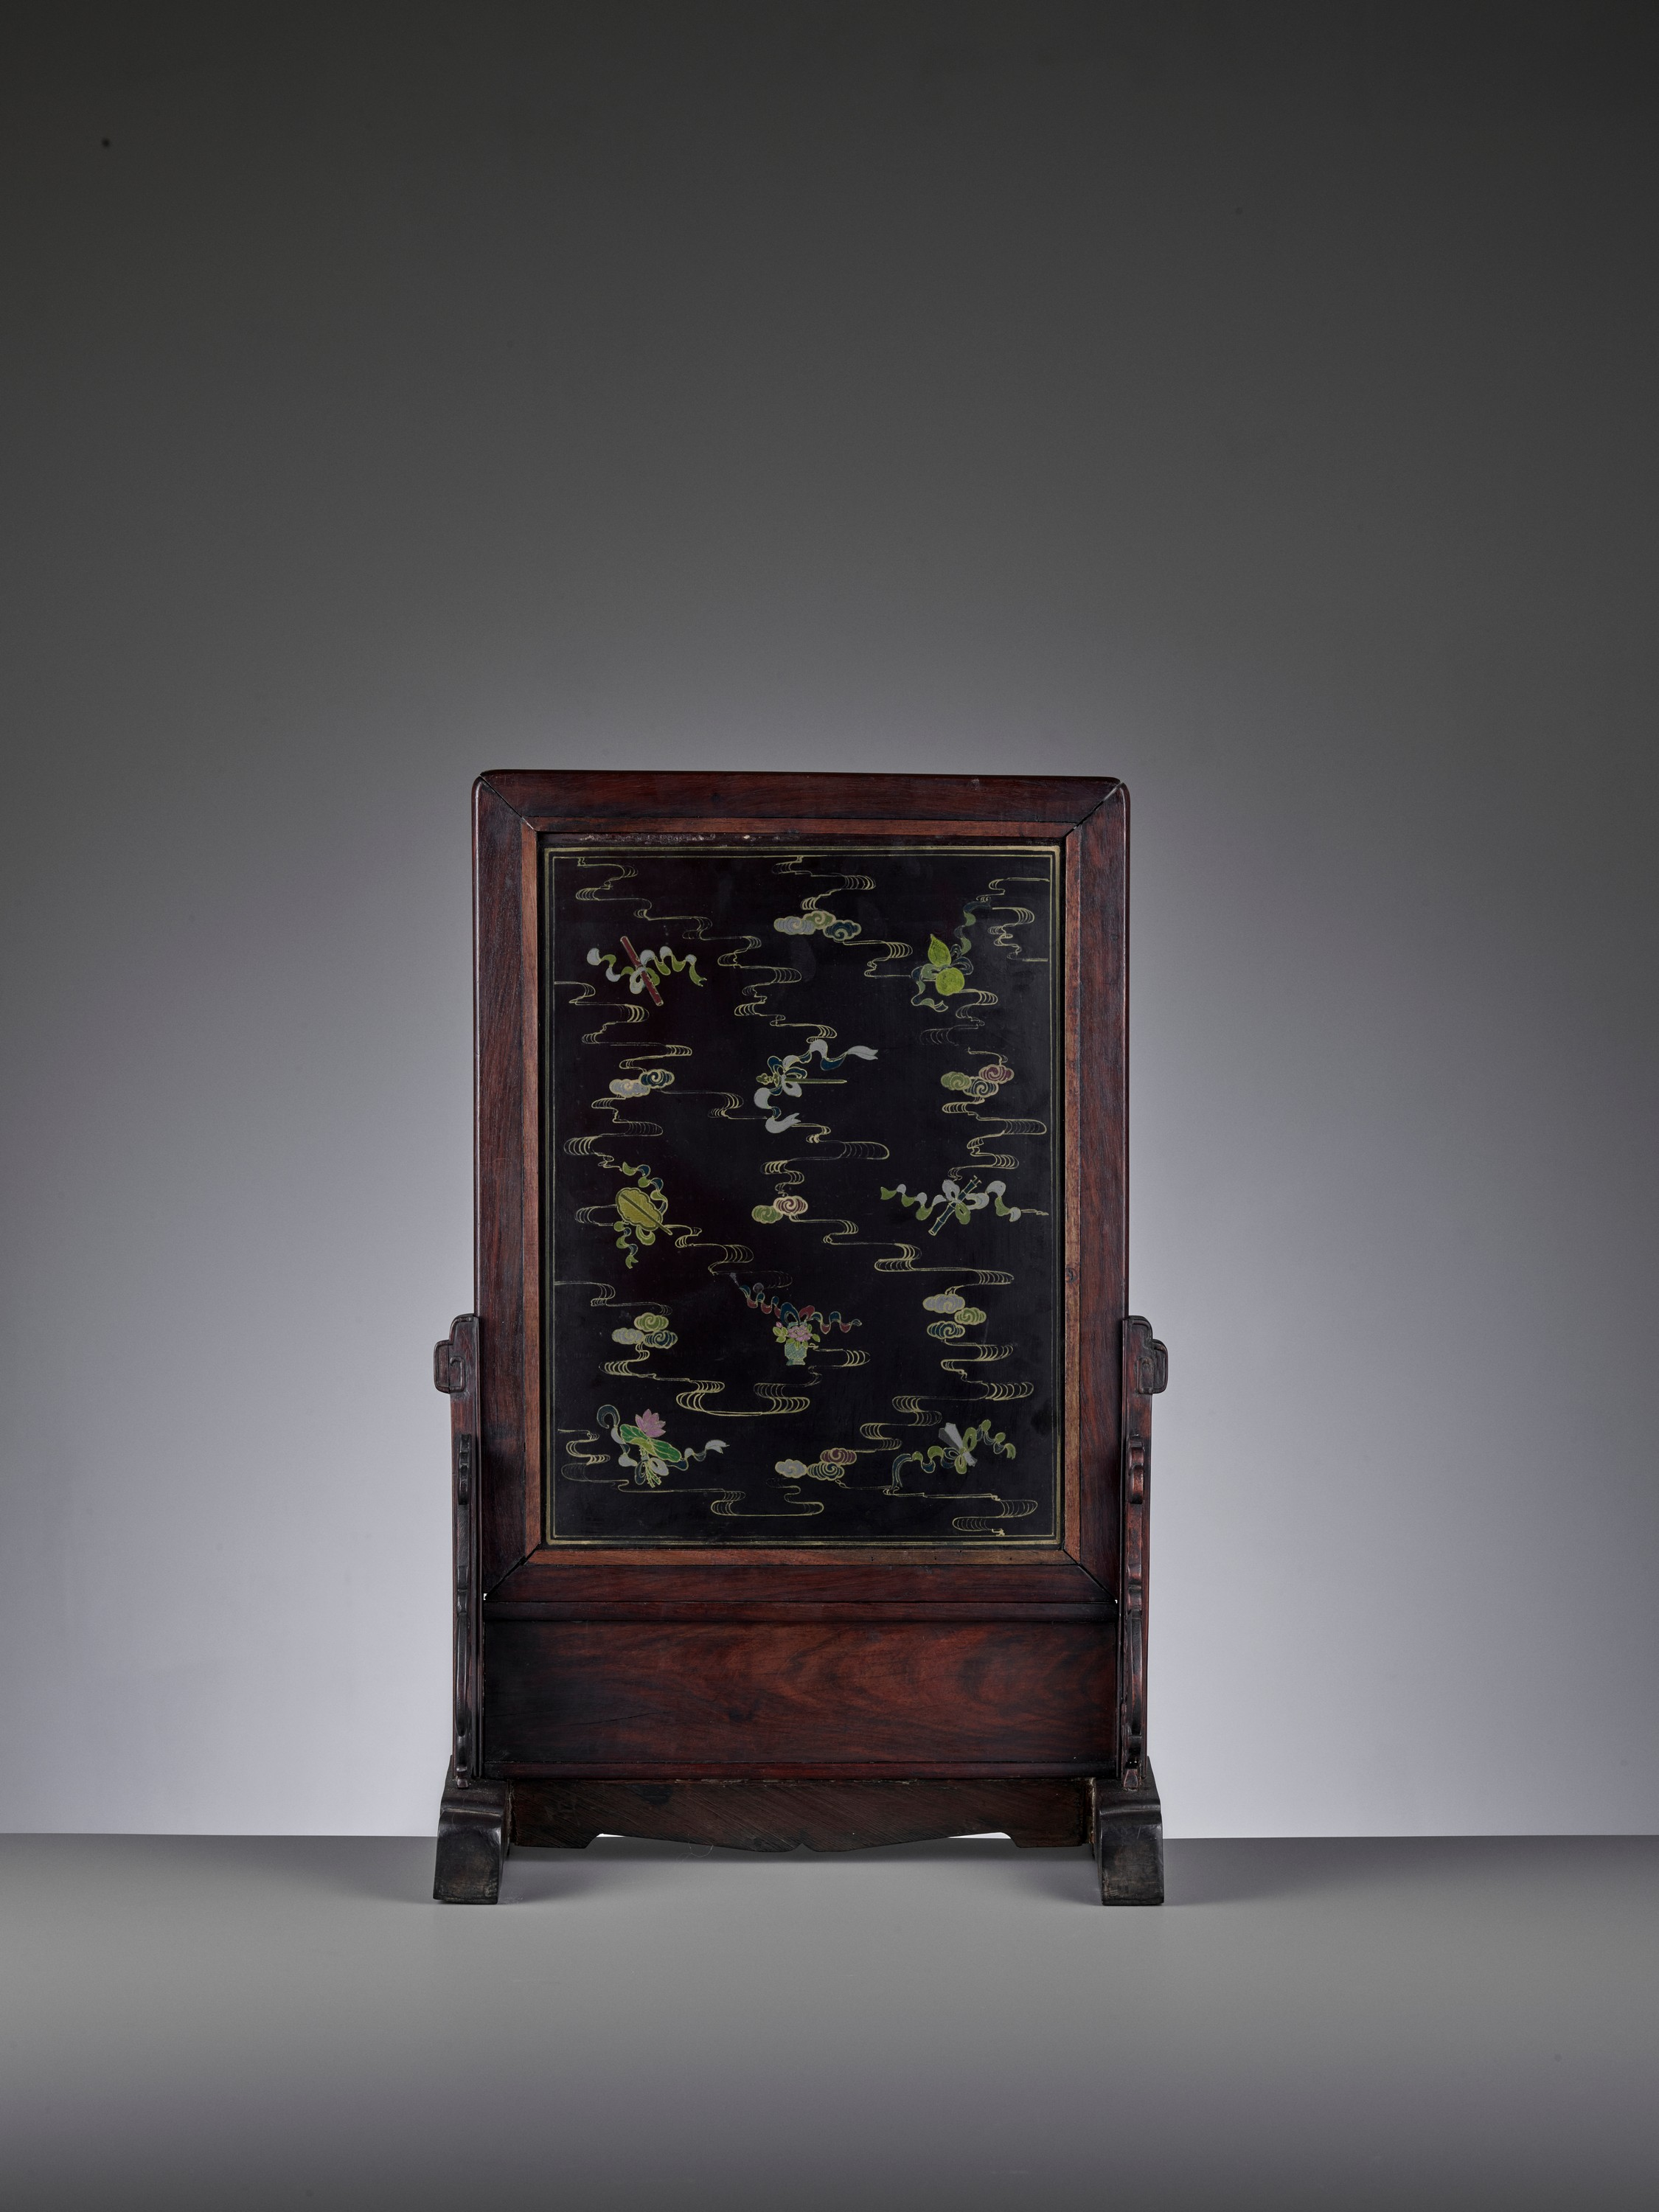 A HARDSTONE AND JADE-INLAID ZITAN TABLE SCREEN, QING - Image 4 of 10